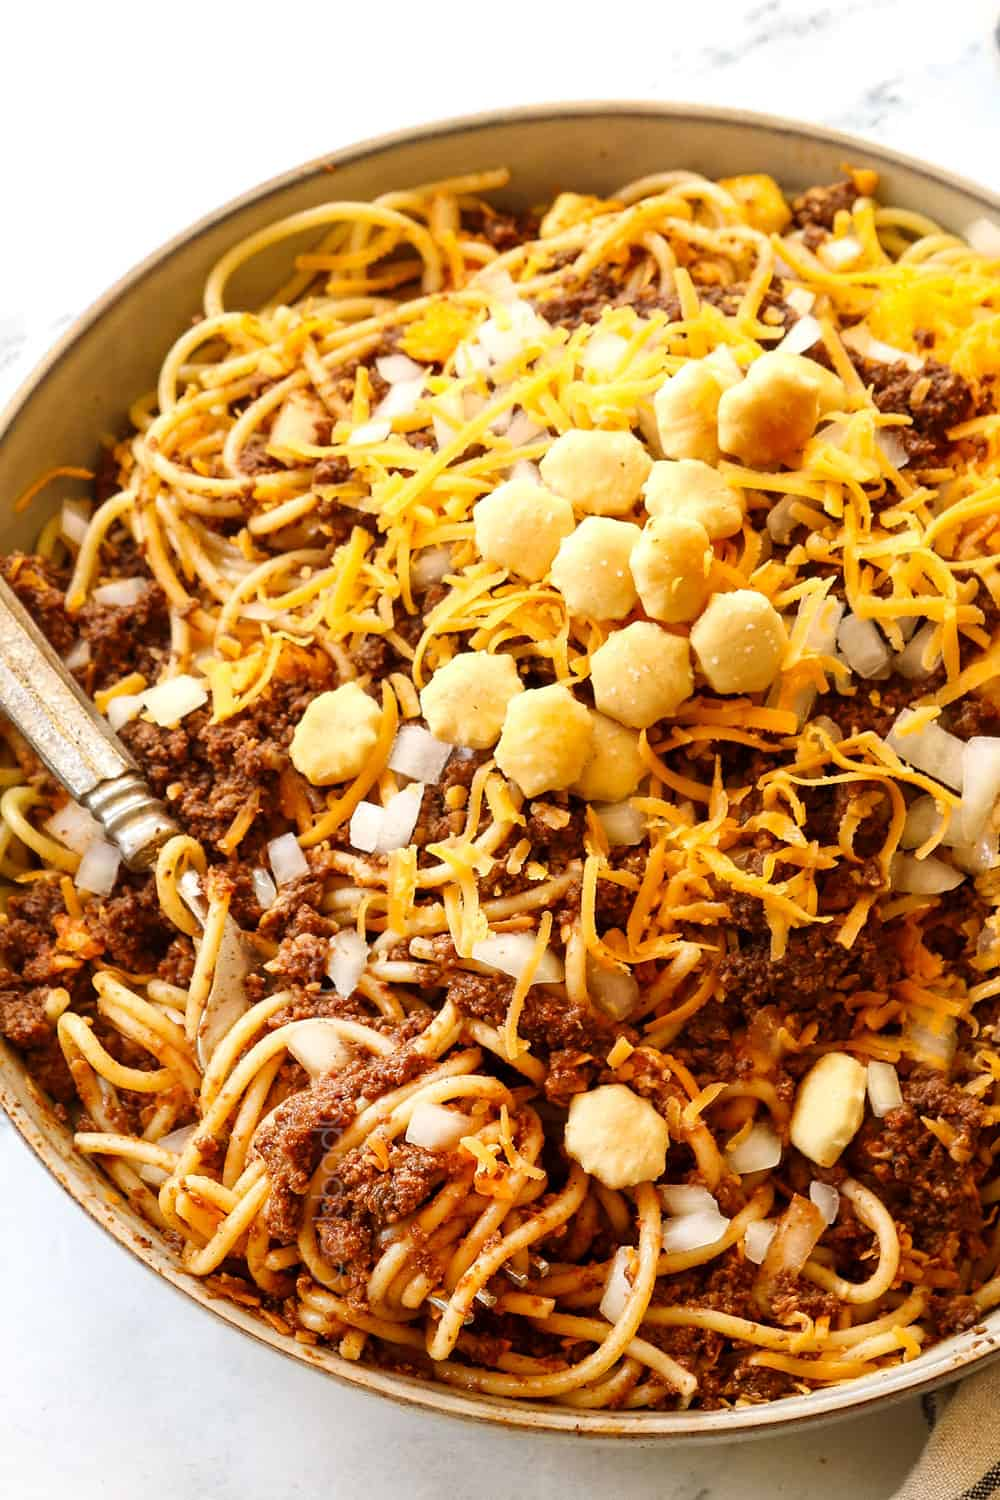 a fork digging into a bowl of Cincinnati chili showing how to eat it